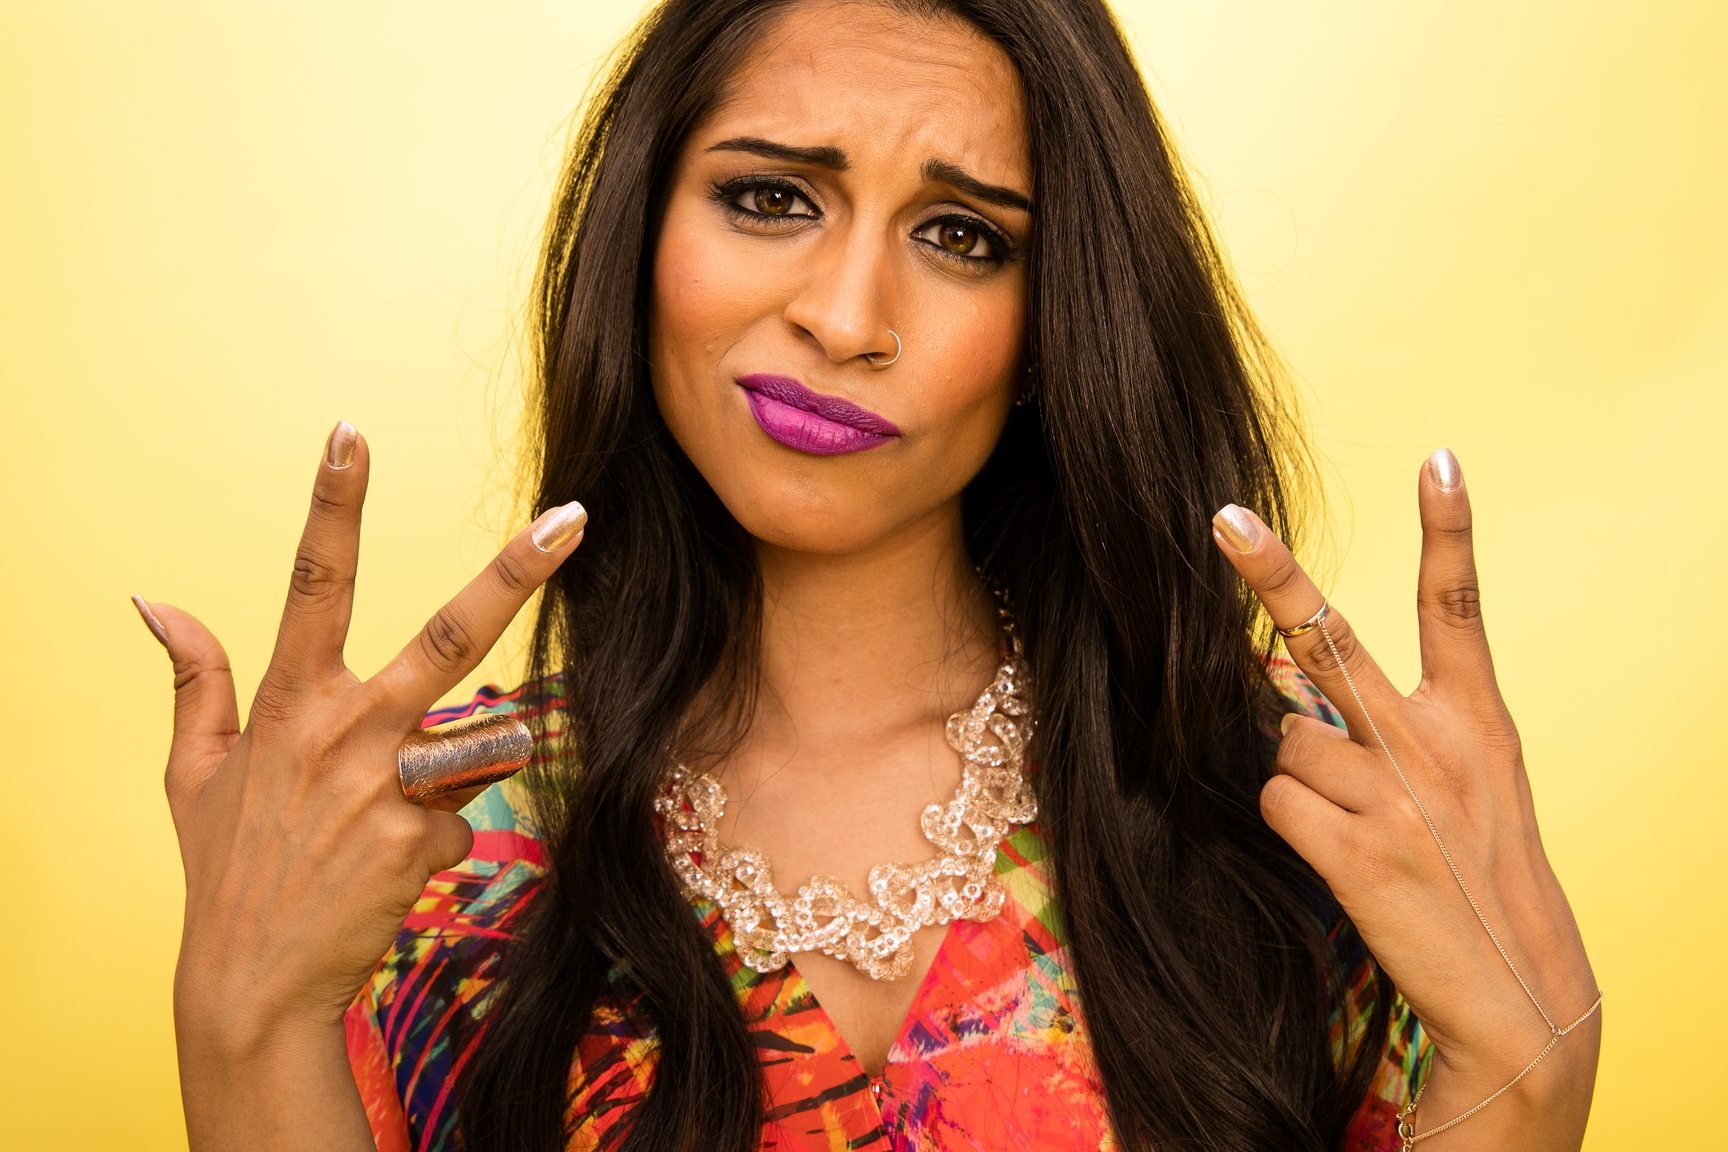 LILLY SINGH - Actress / Writer / Director / Social Media Influencer